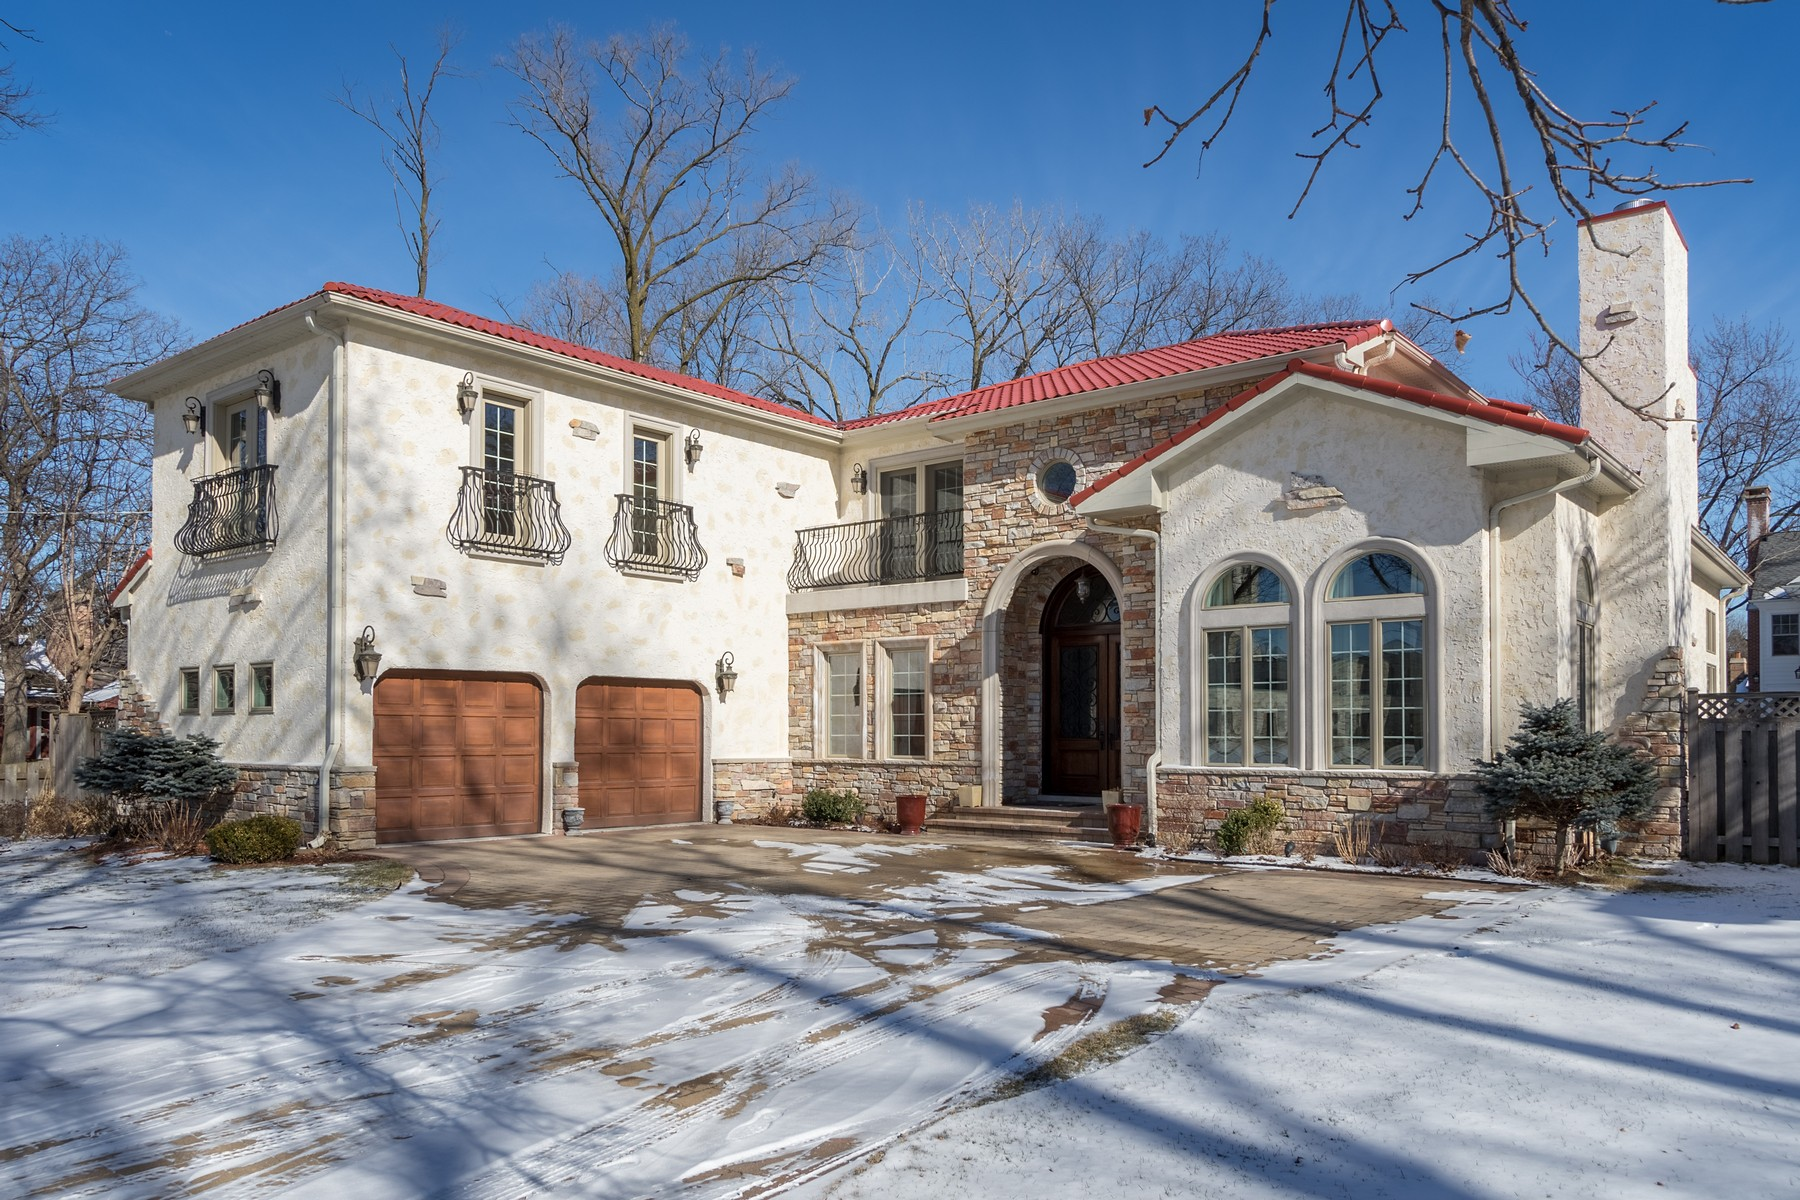 Single Family Home for Sale at Magnificent Mediterranean Style Home 820 Locust Road Wilmette, Illinois, 60091 United States